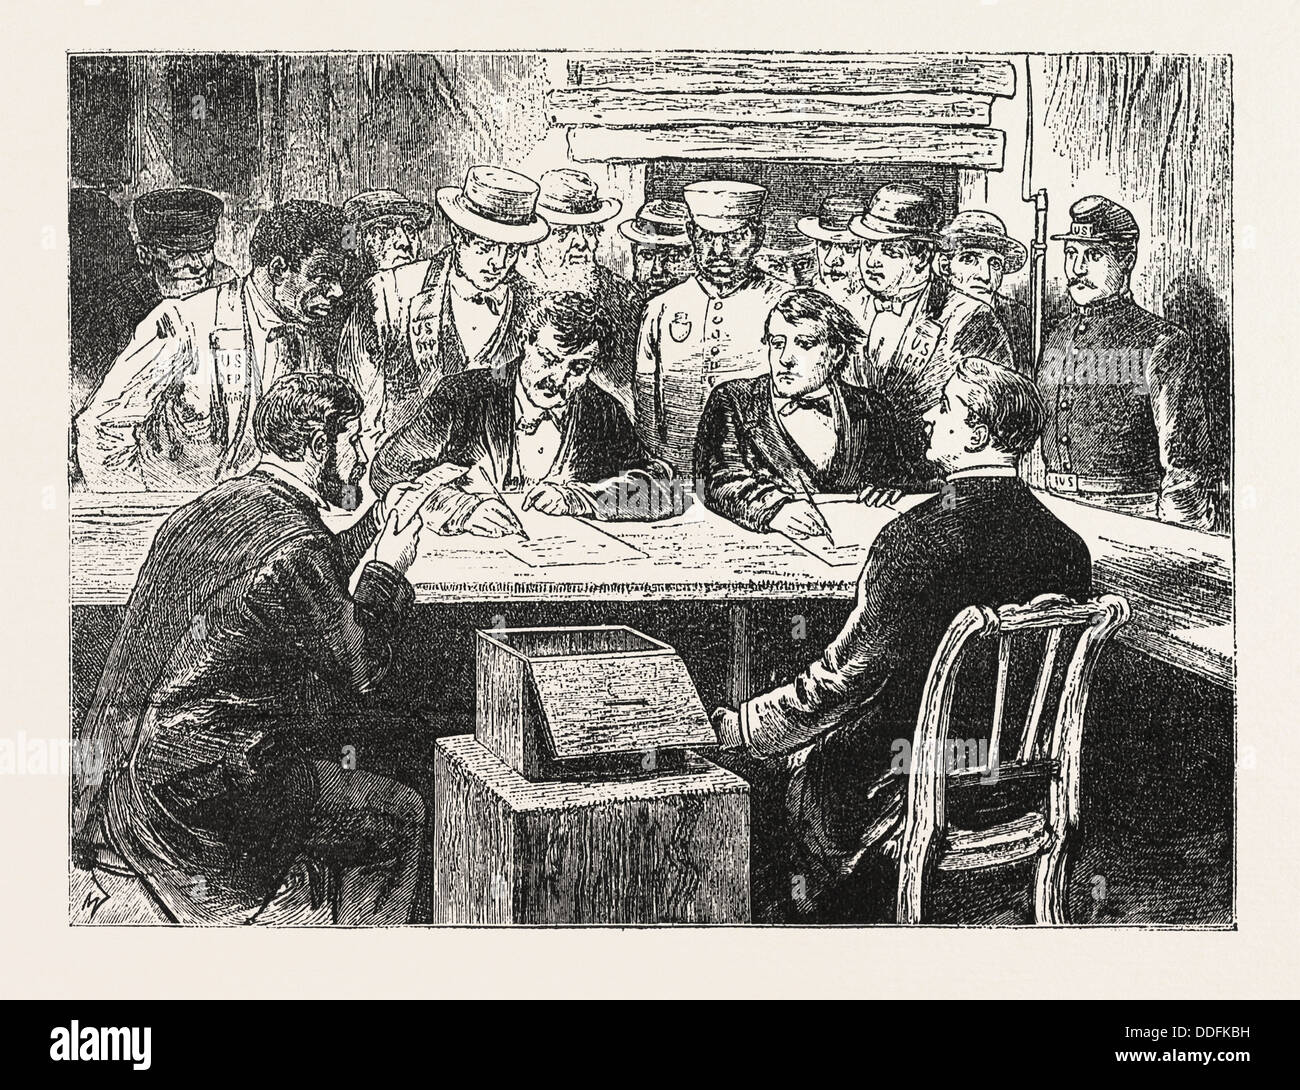 PRESIDENTIAL ELECTION, COUNTING THE VOTES, ENGRAVING 1876, US, USA, America, United States, ELECTIONS, VOTING - Stock Image